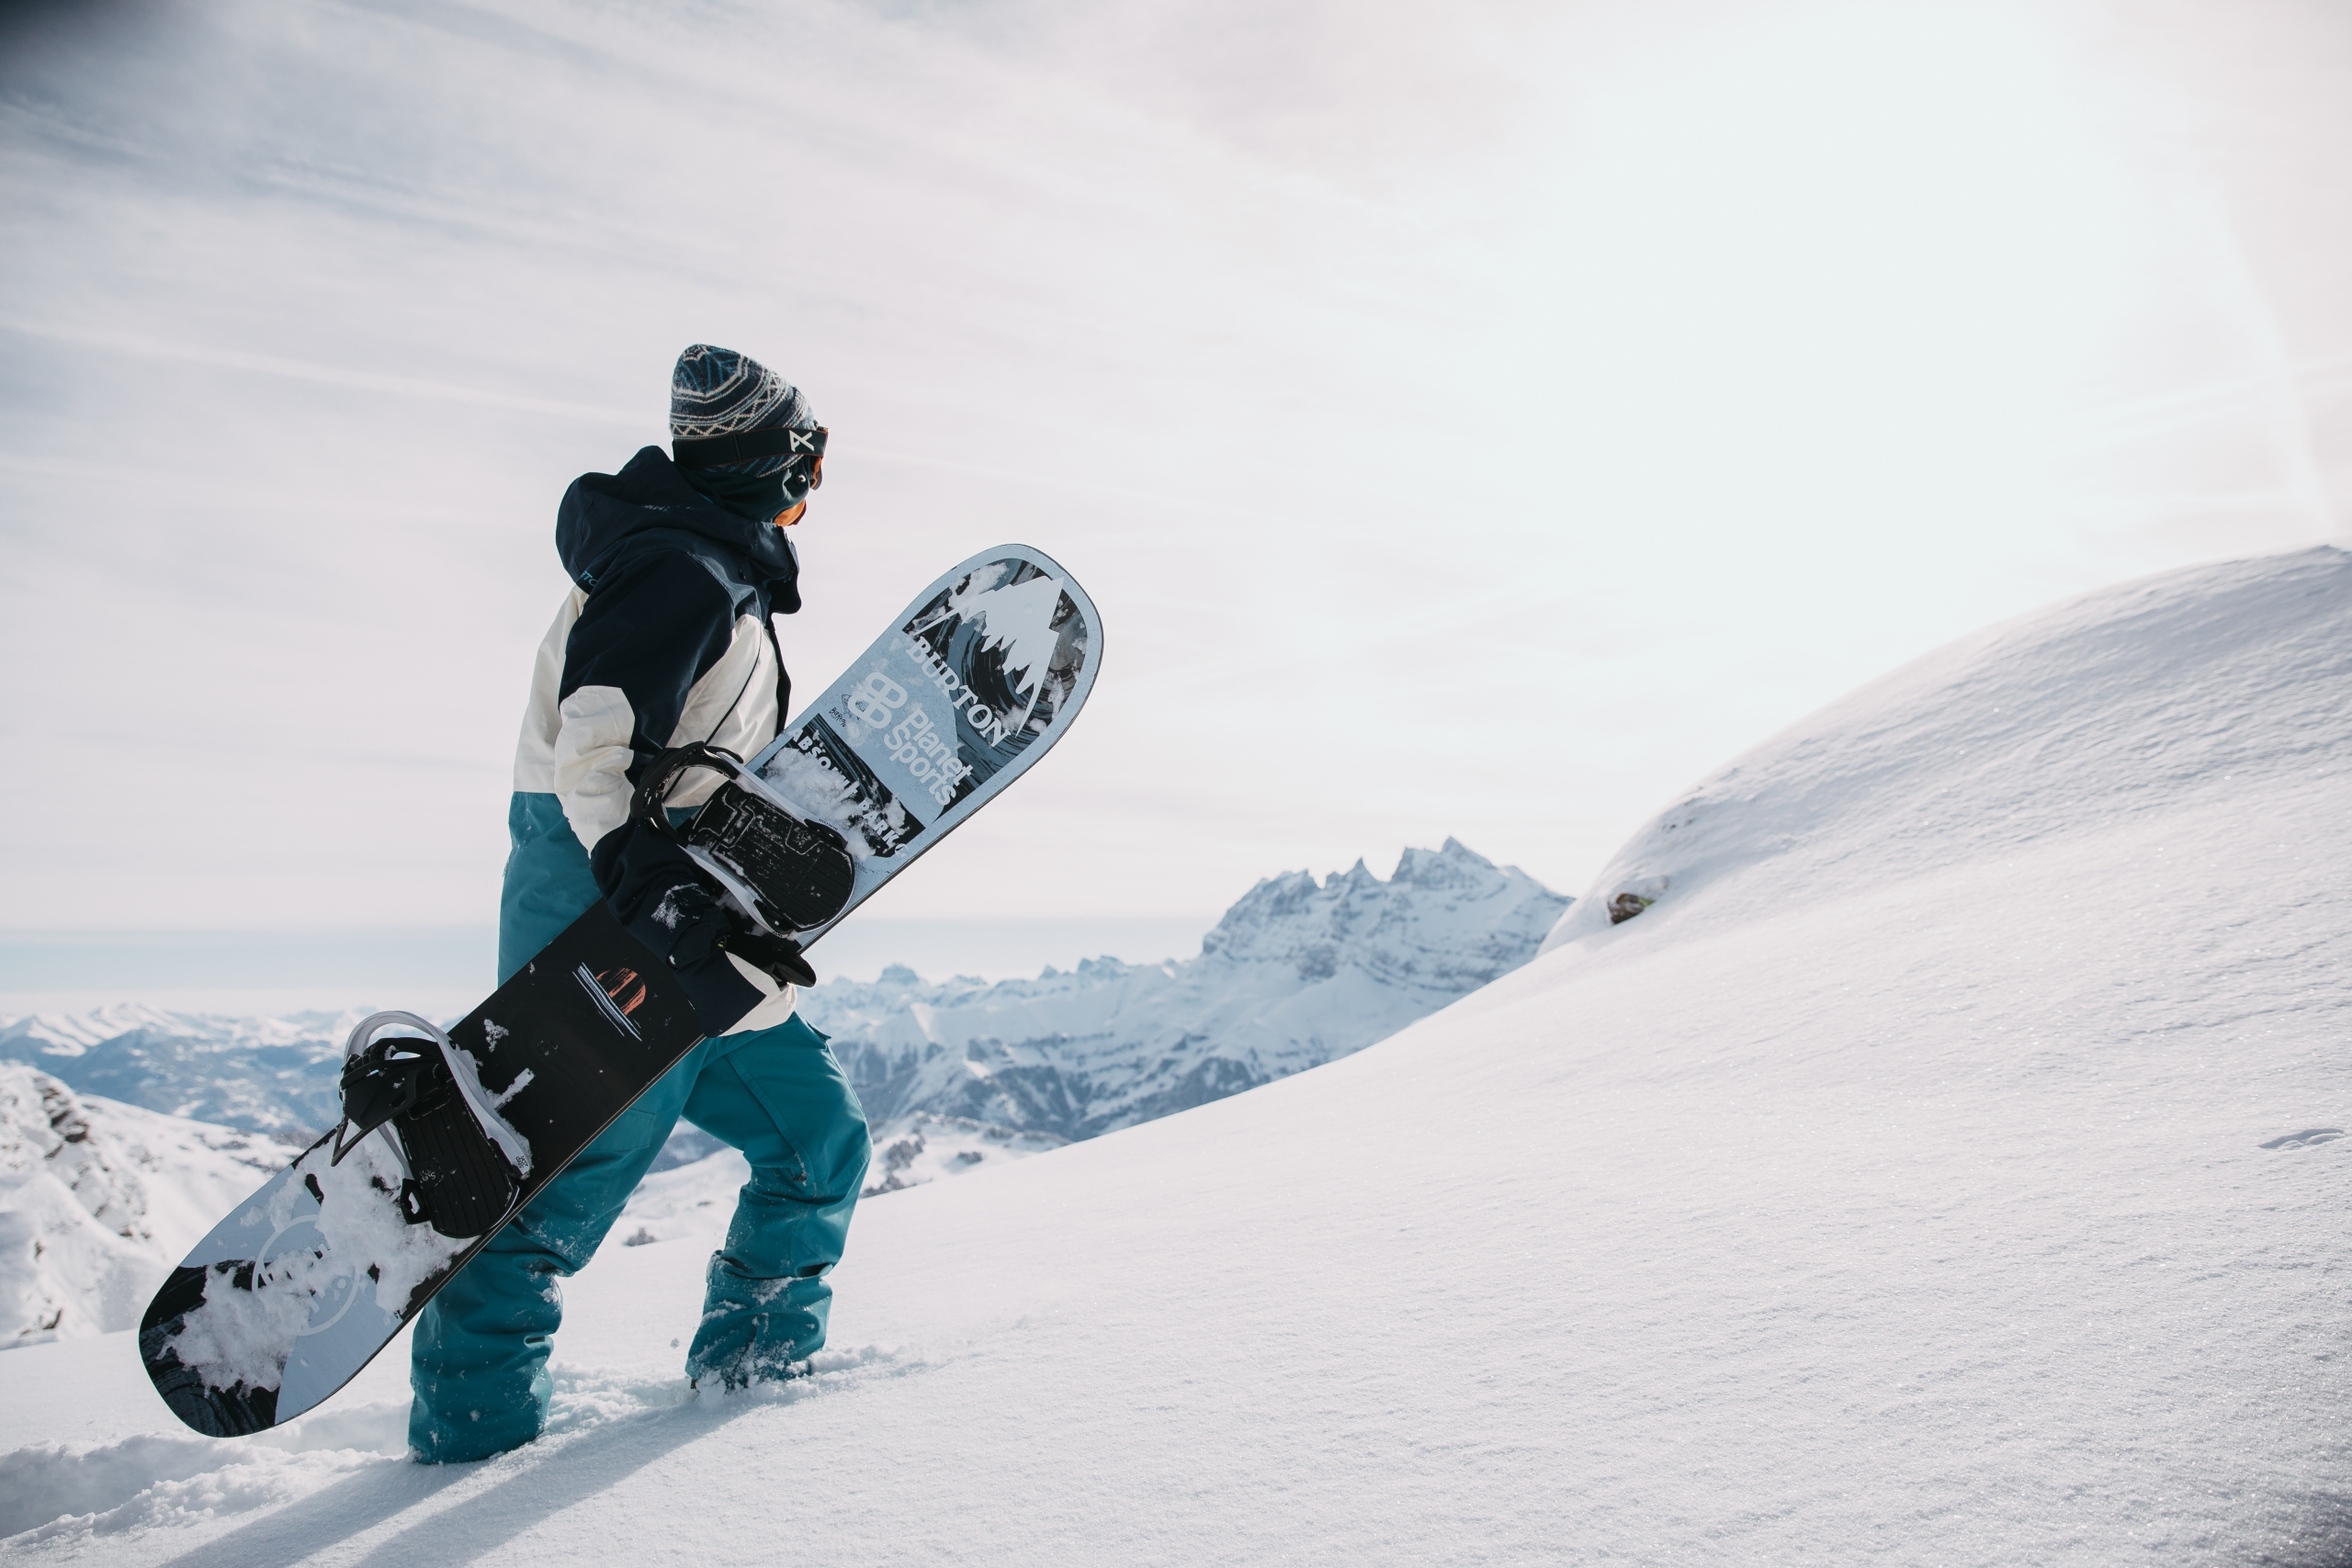 A snowboarder holds their board and walks up a slope